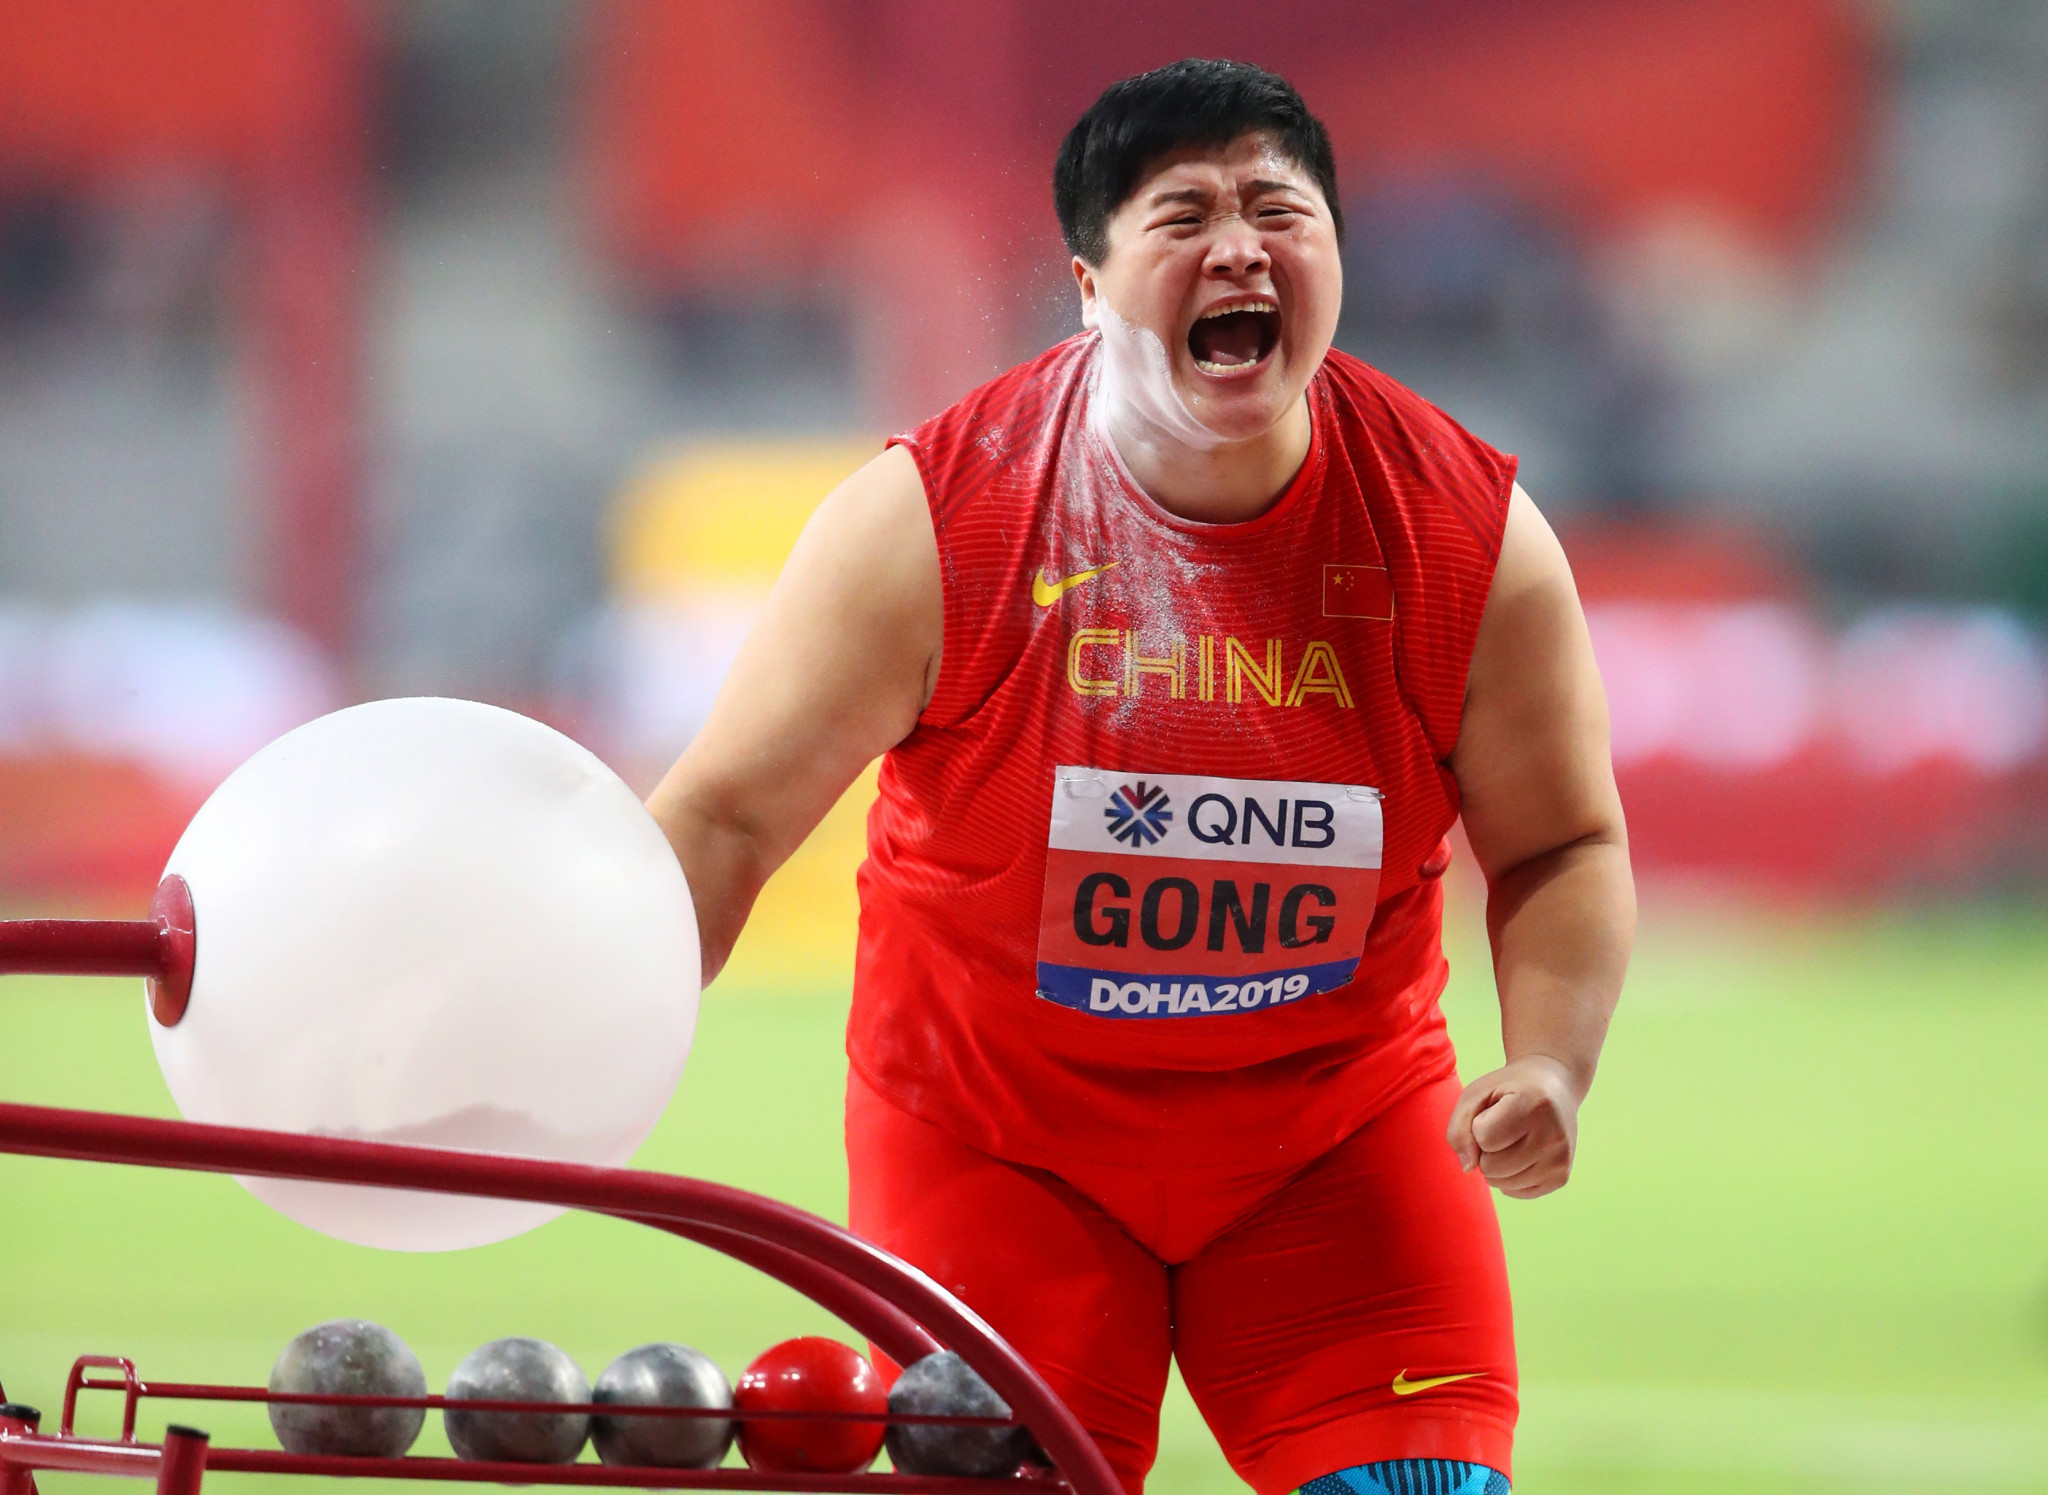 Lijiao Gong of China celebrates winning the women's shot put - her second consecutive gold and the sixth time time in a row she has won a medal at the IAAF World Championships ©Getty Images